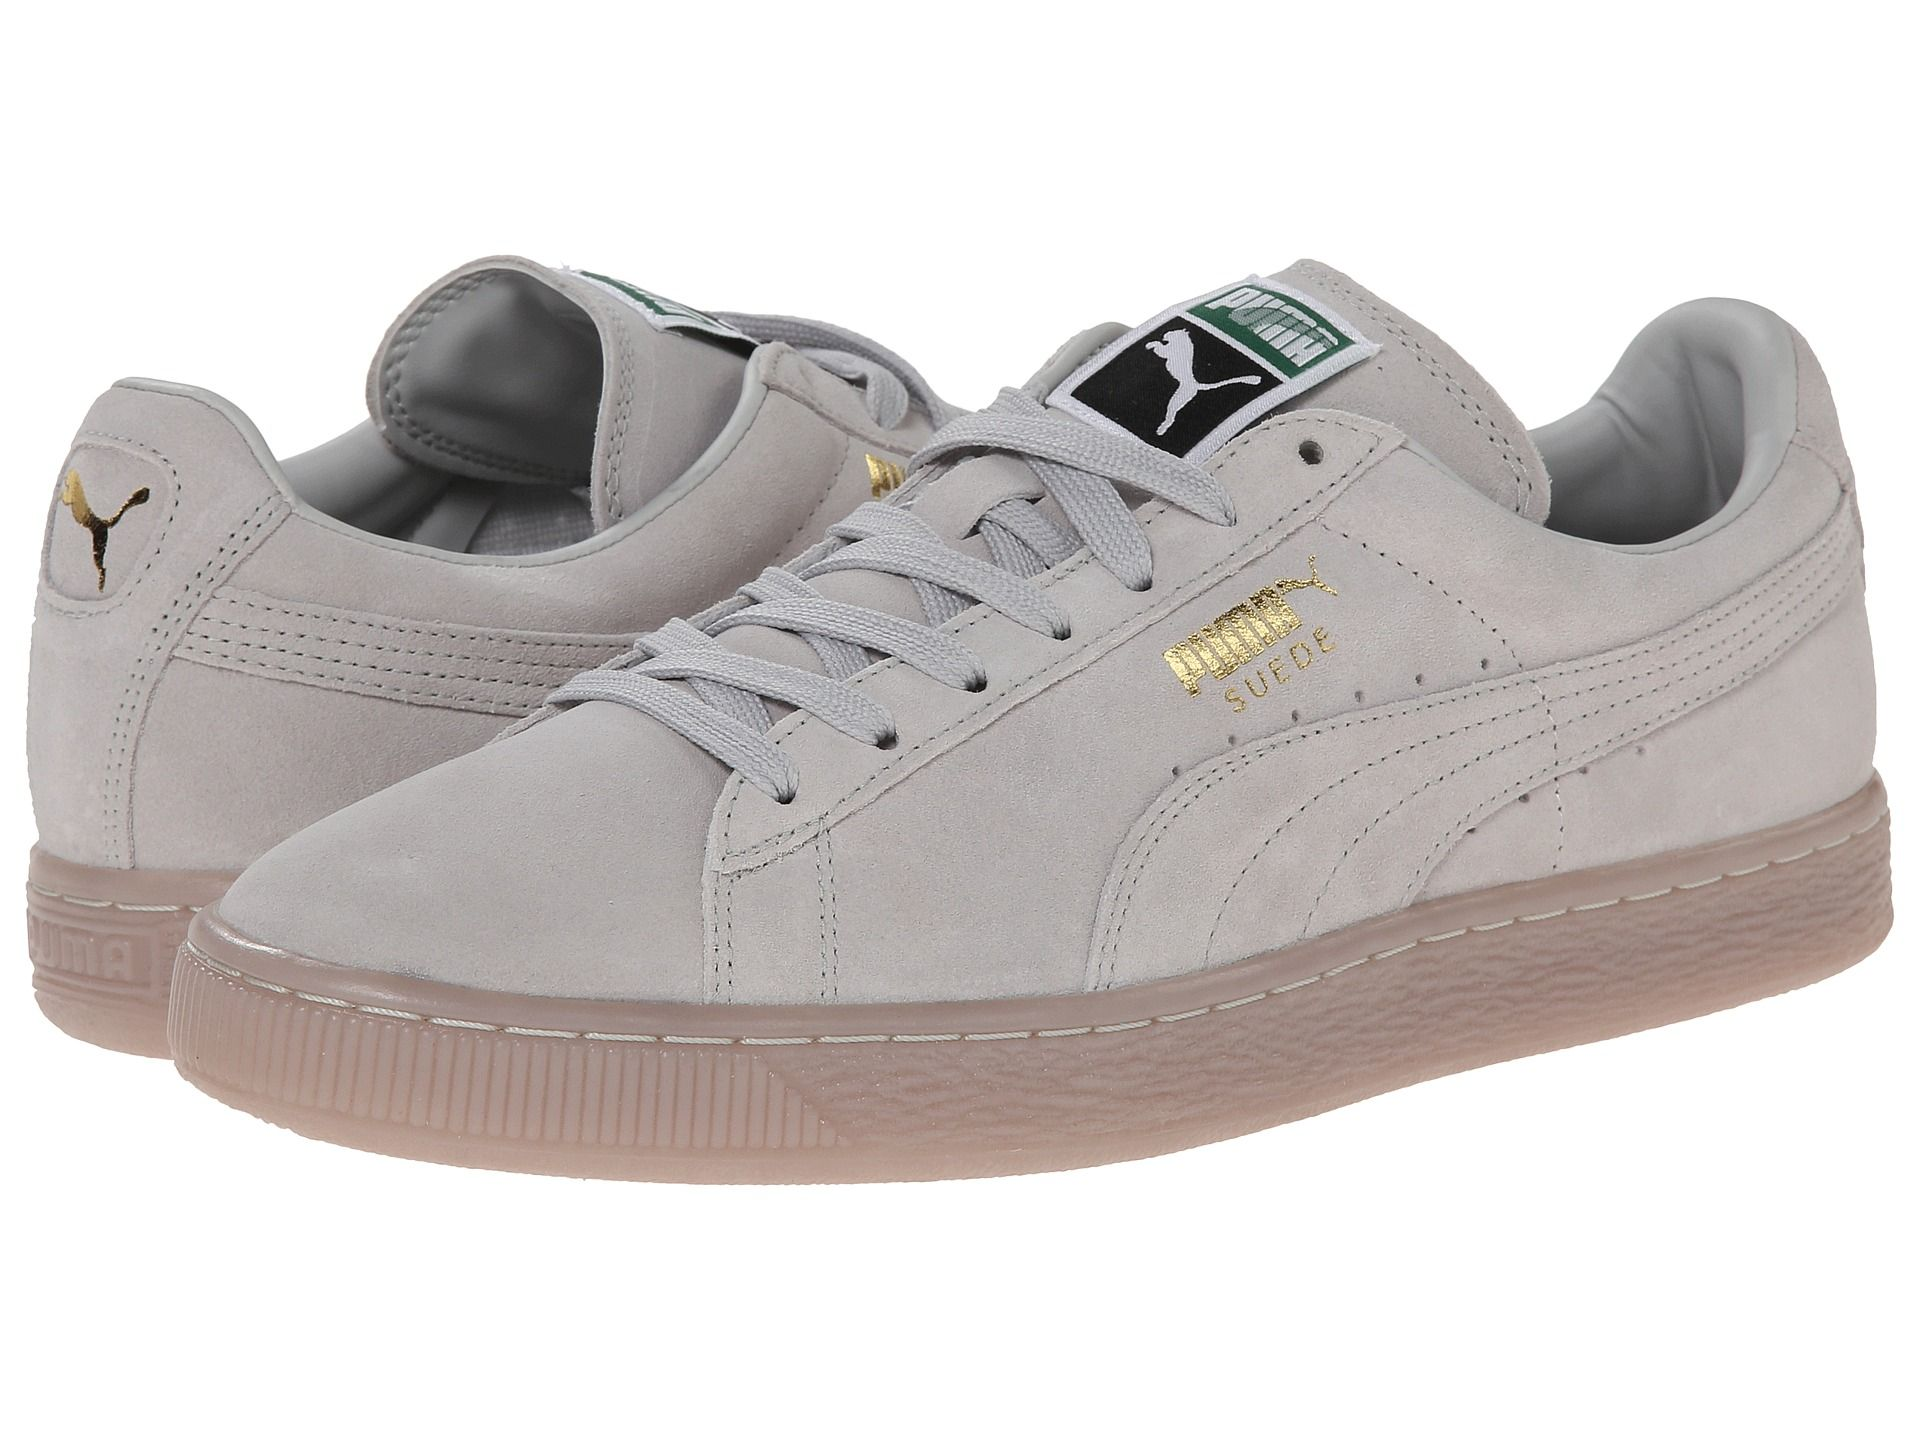 Suede classic iced gold foil, PUMA, Shoes, Black